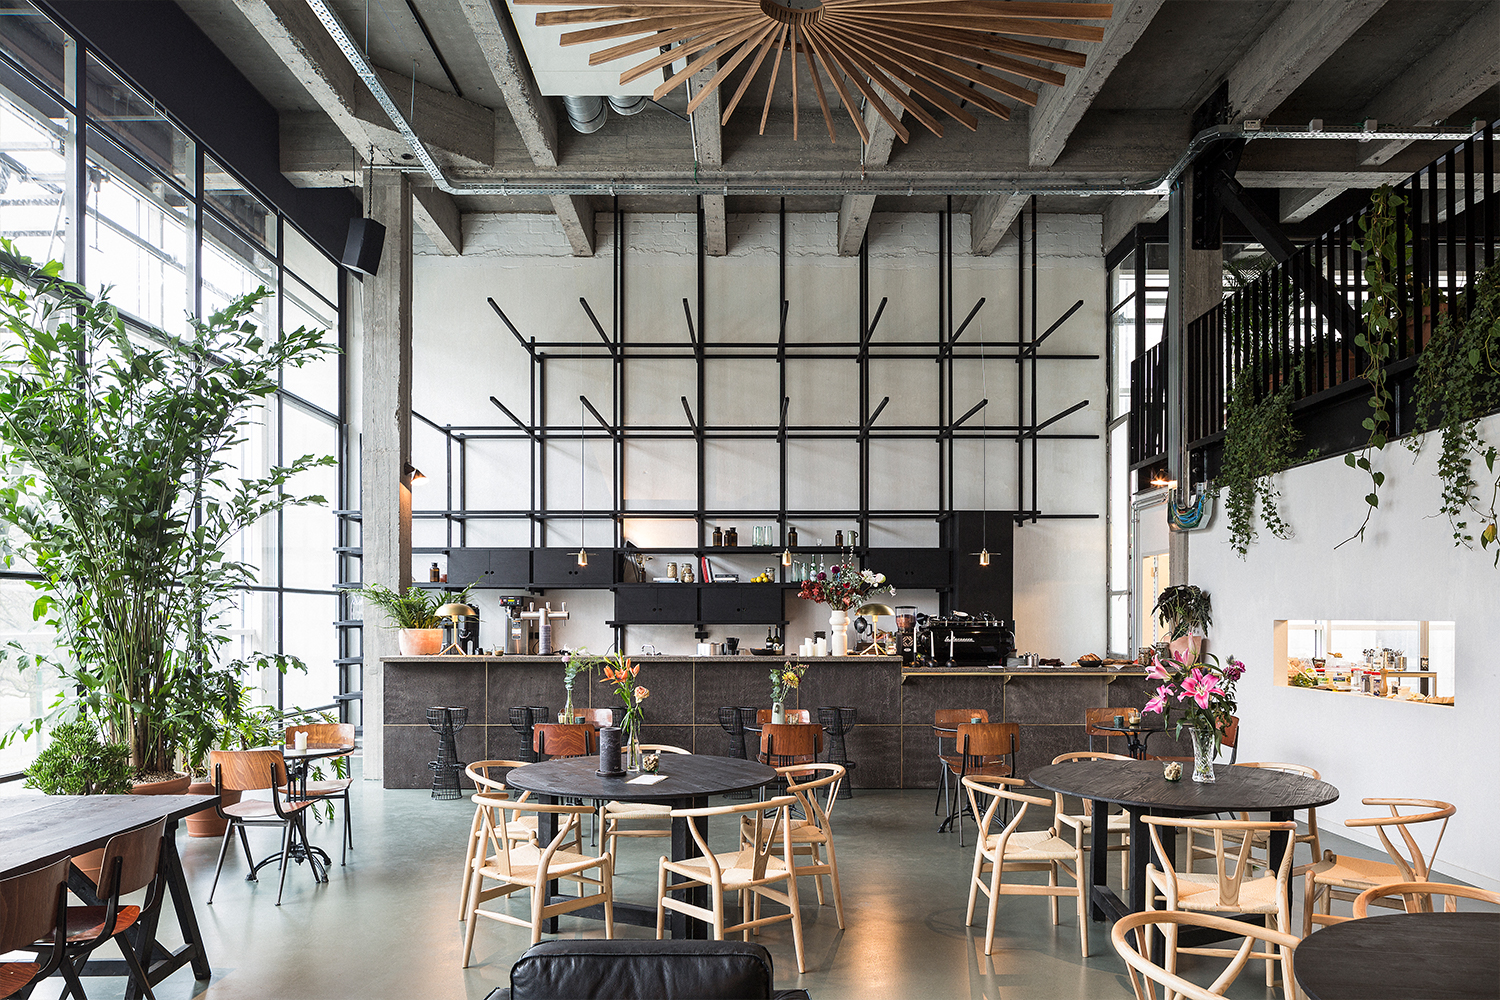 midori hub, a midori lunch location, in fosbury and sons harmony in Antwerp